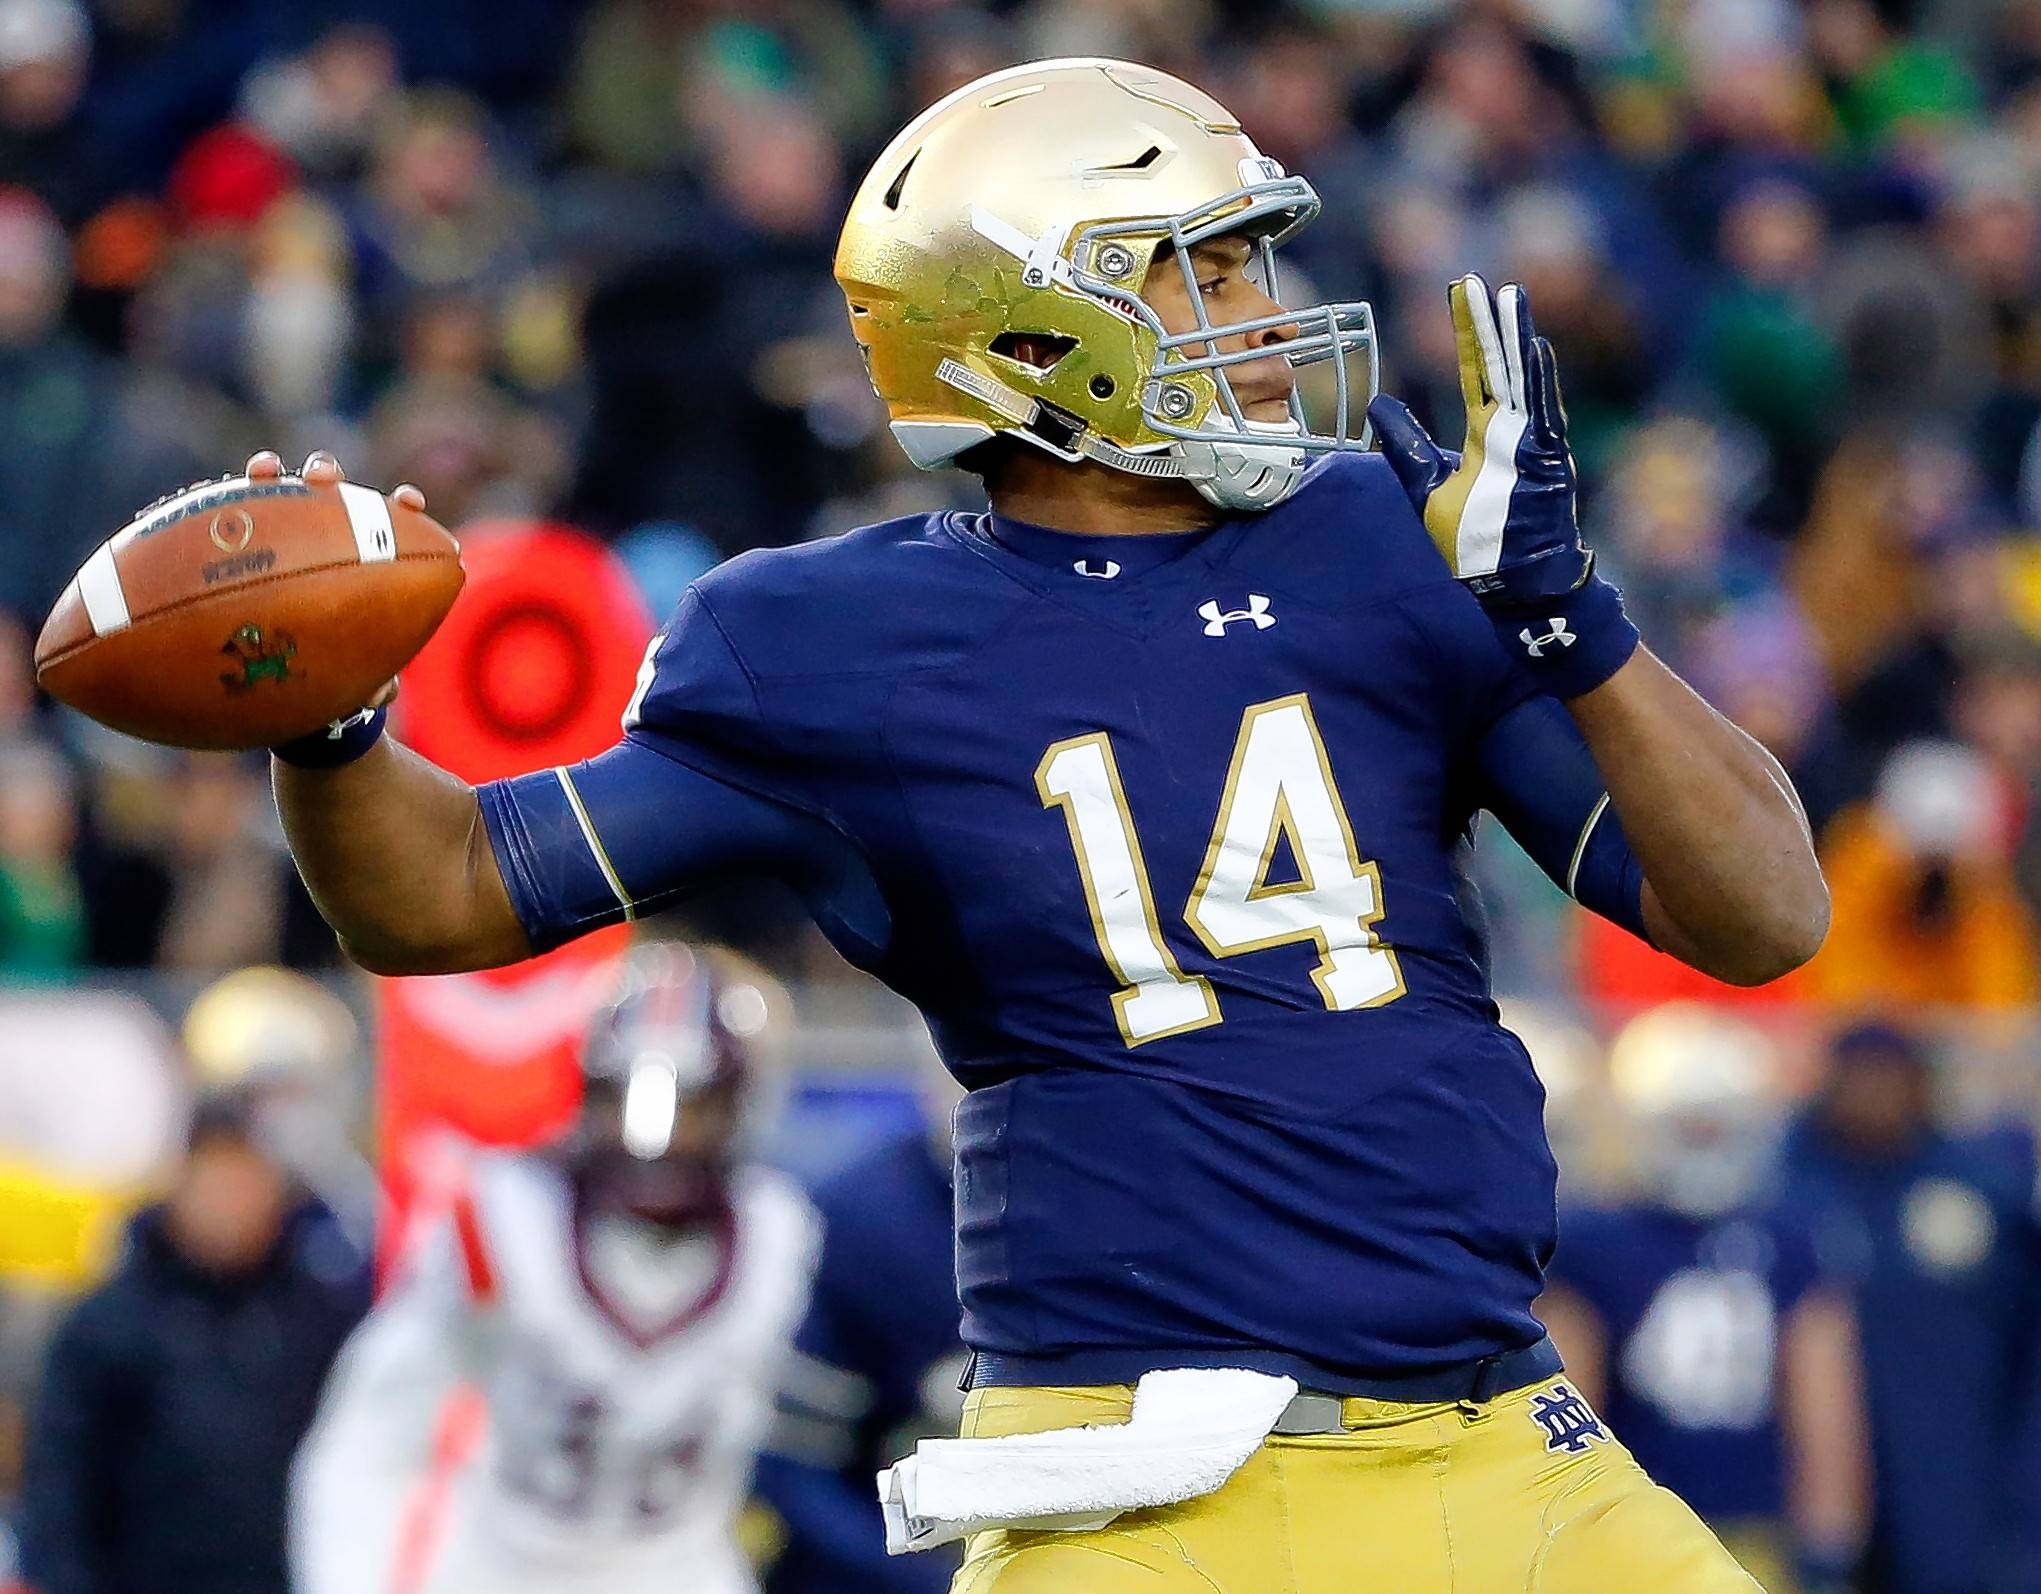 ESPN draft analyst Mel Kiper said the Chicago Bears have a chance to score a QB like Notre Dame's DeShone Kizer in the second round, while getting a top defensive guy in the first round.